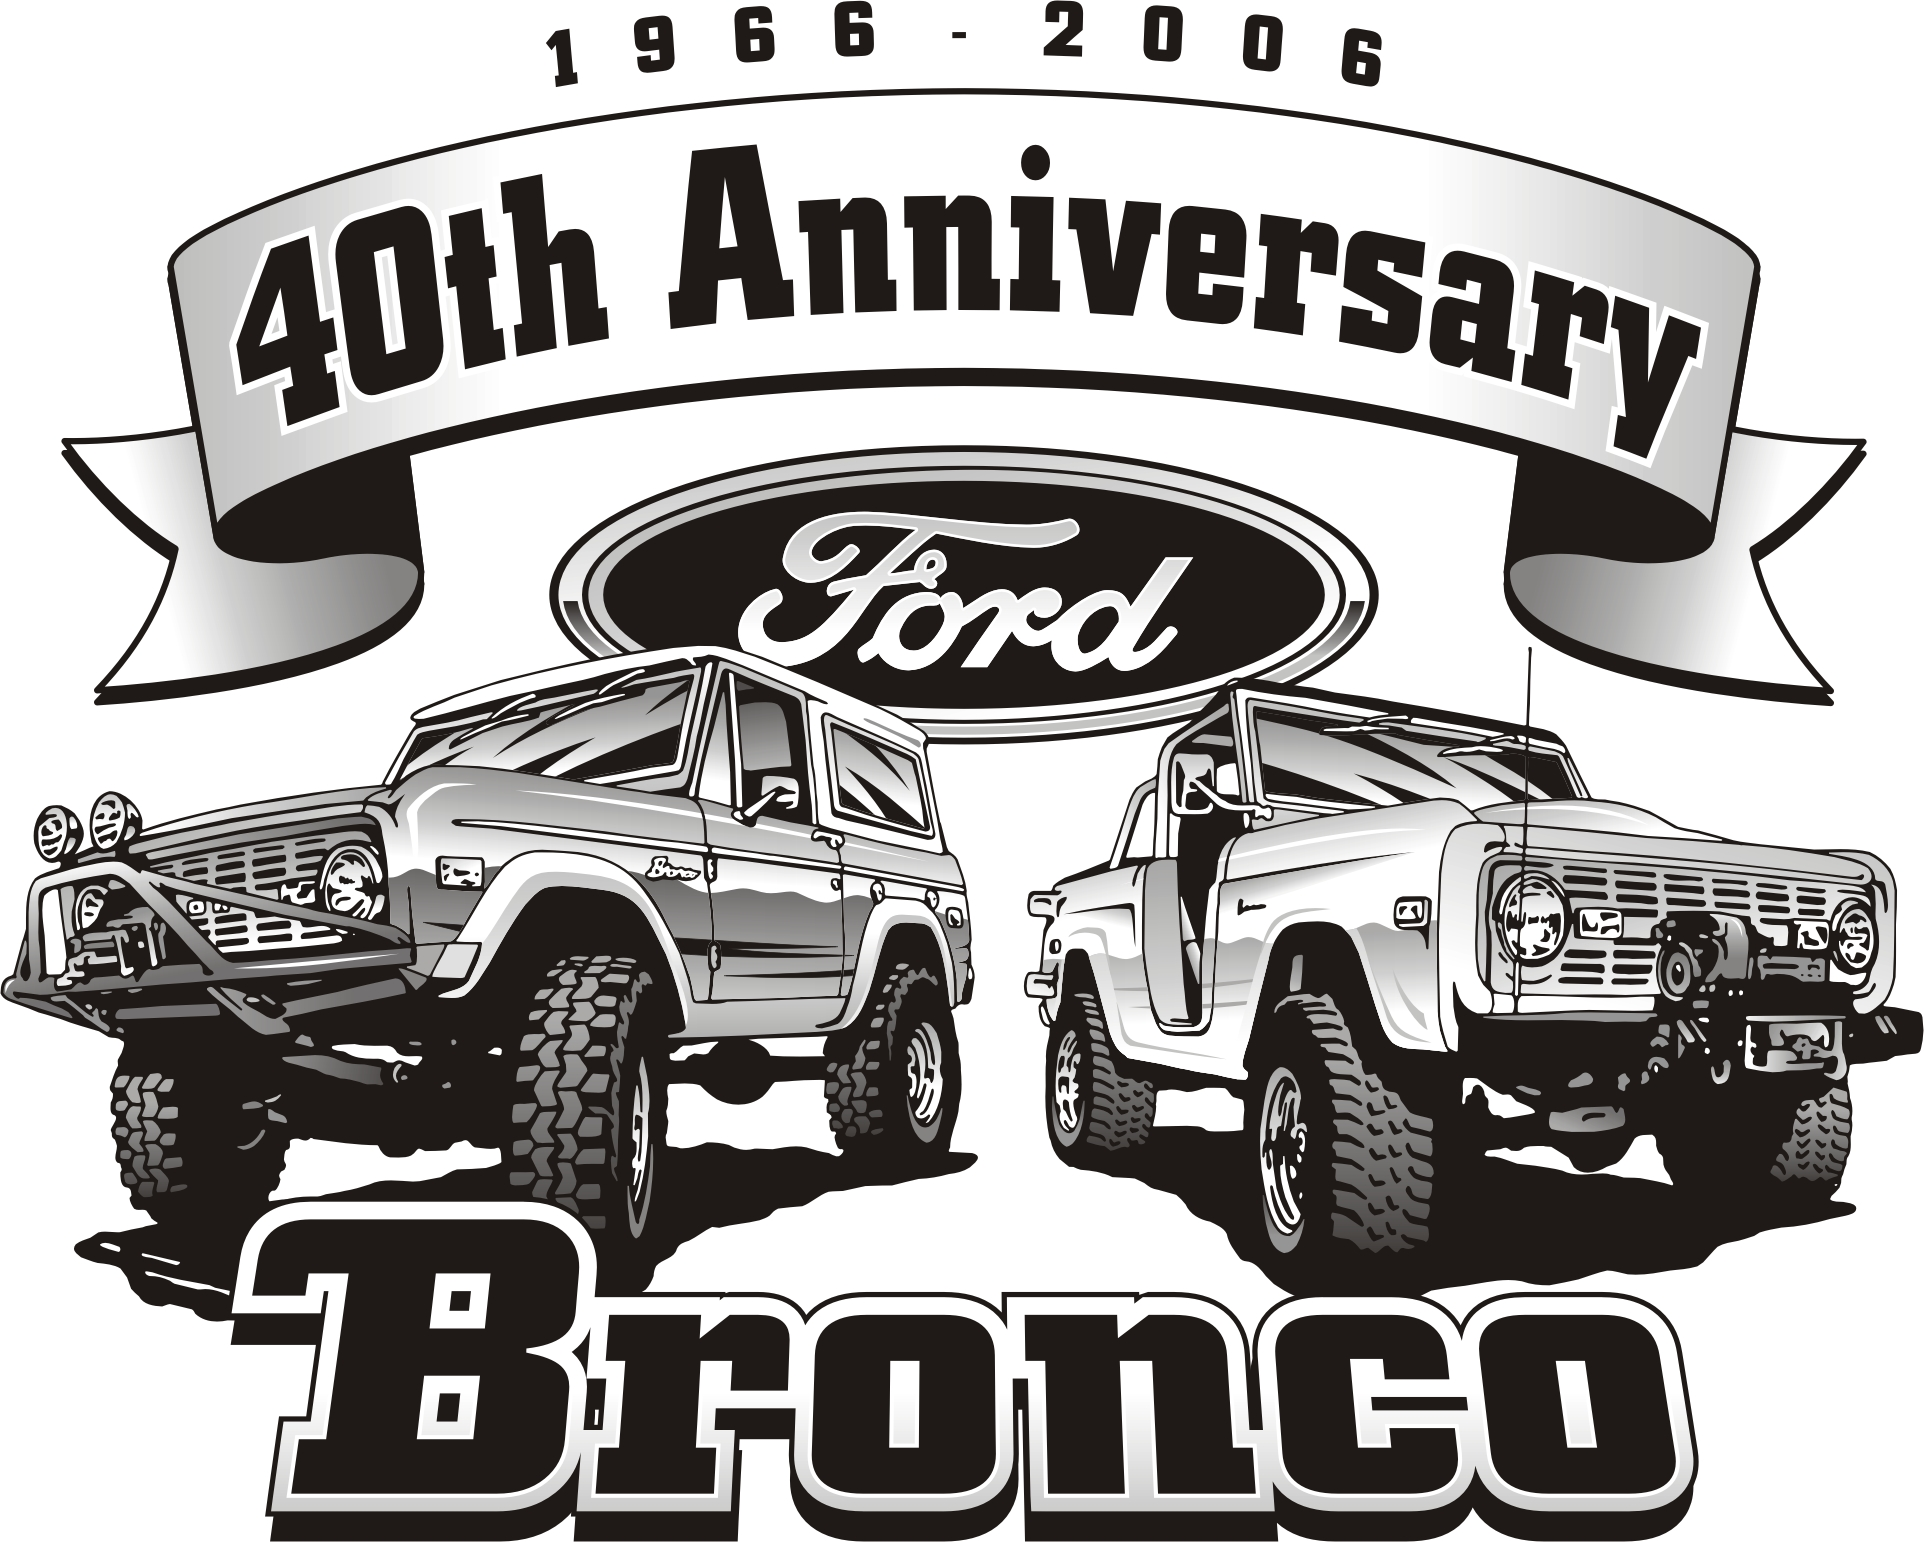 66-77 Early Bronco